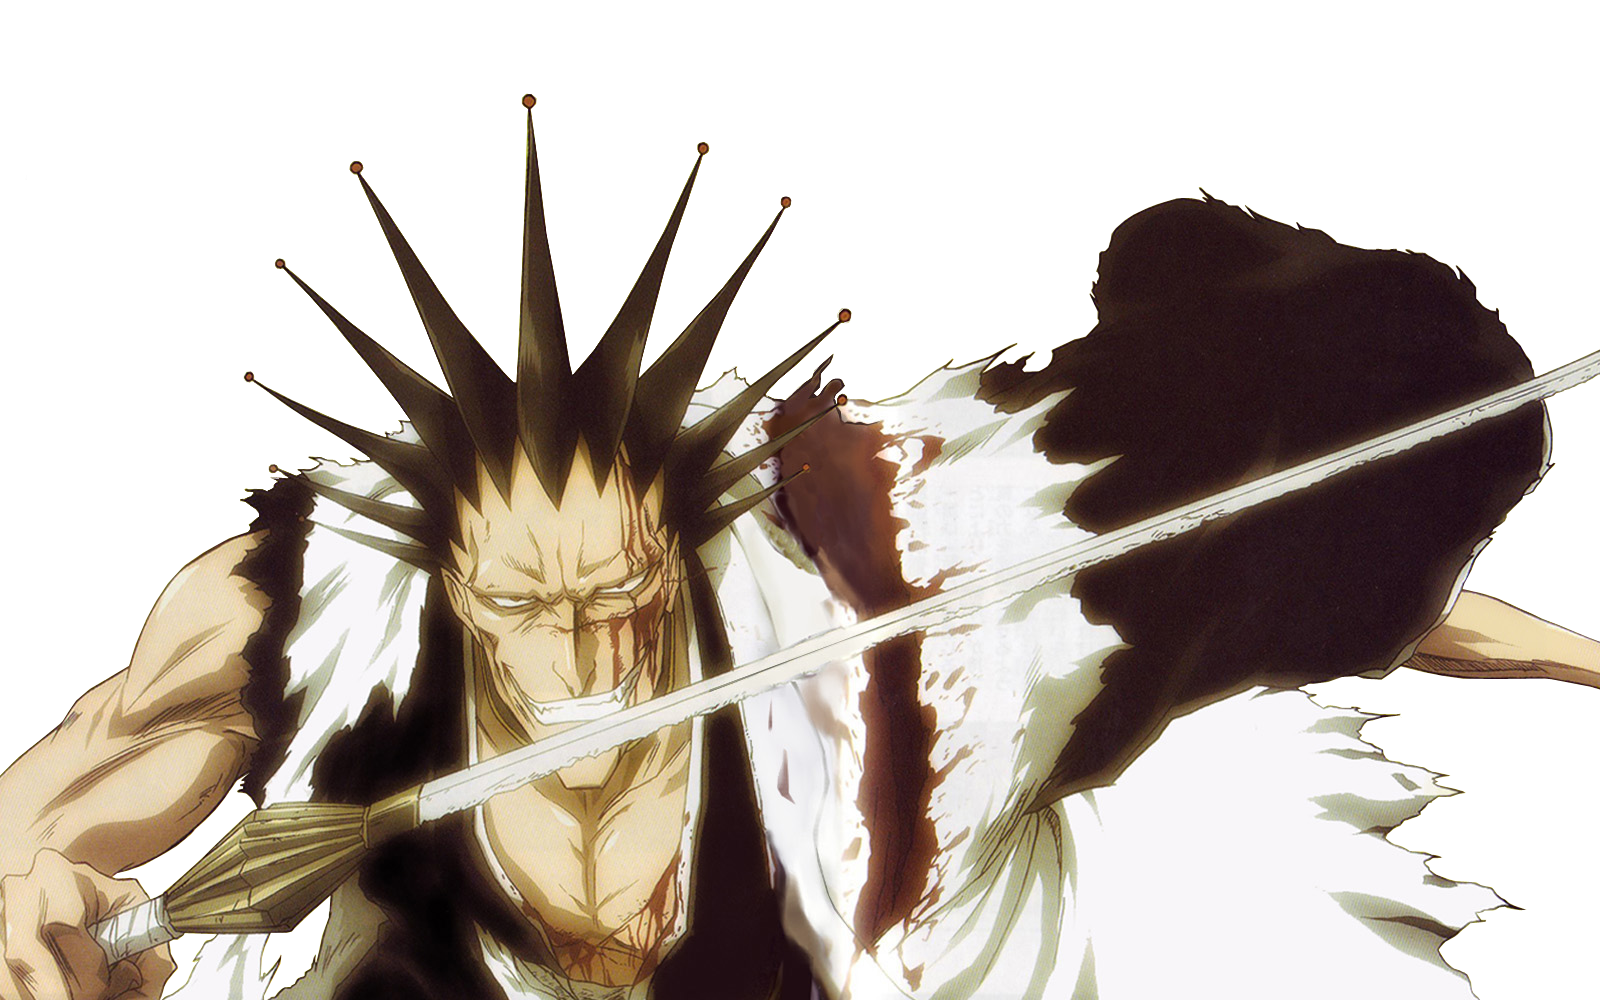 Anime Bleach Wallpaper Bleach Bleach anime, Bleach